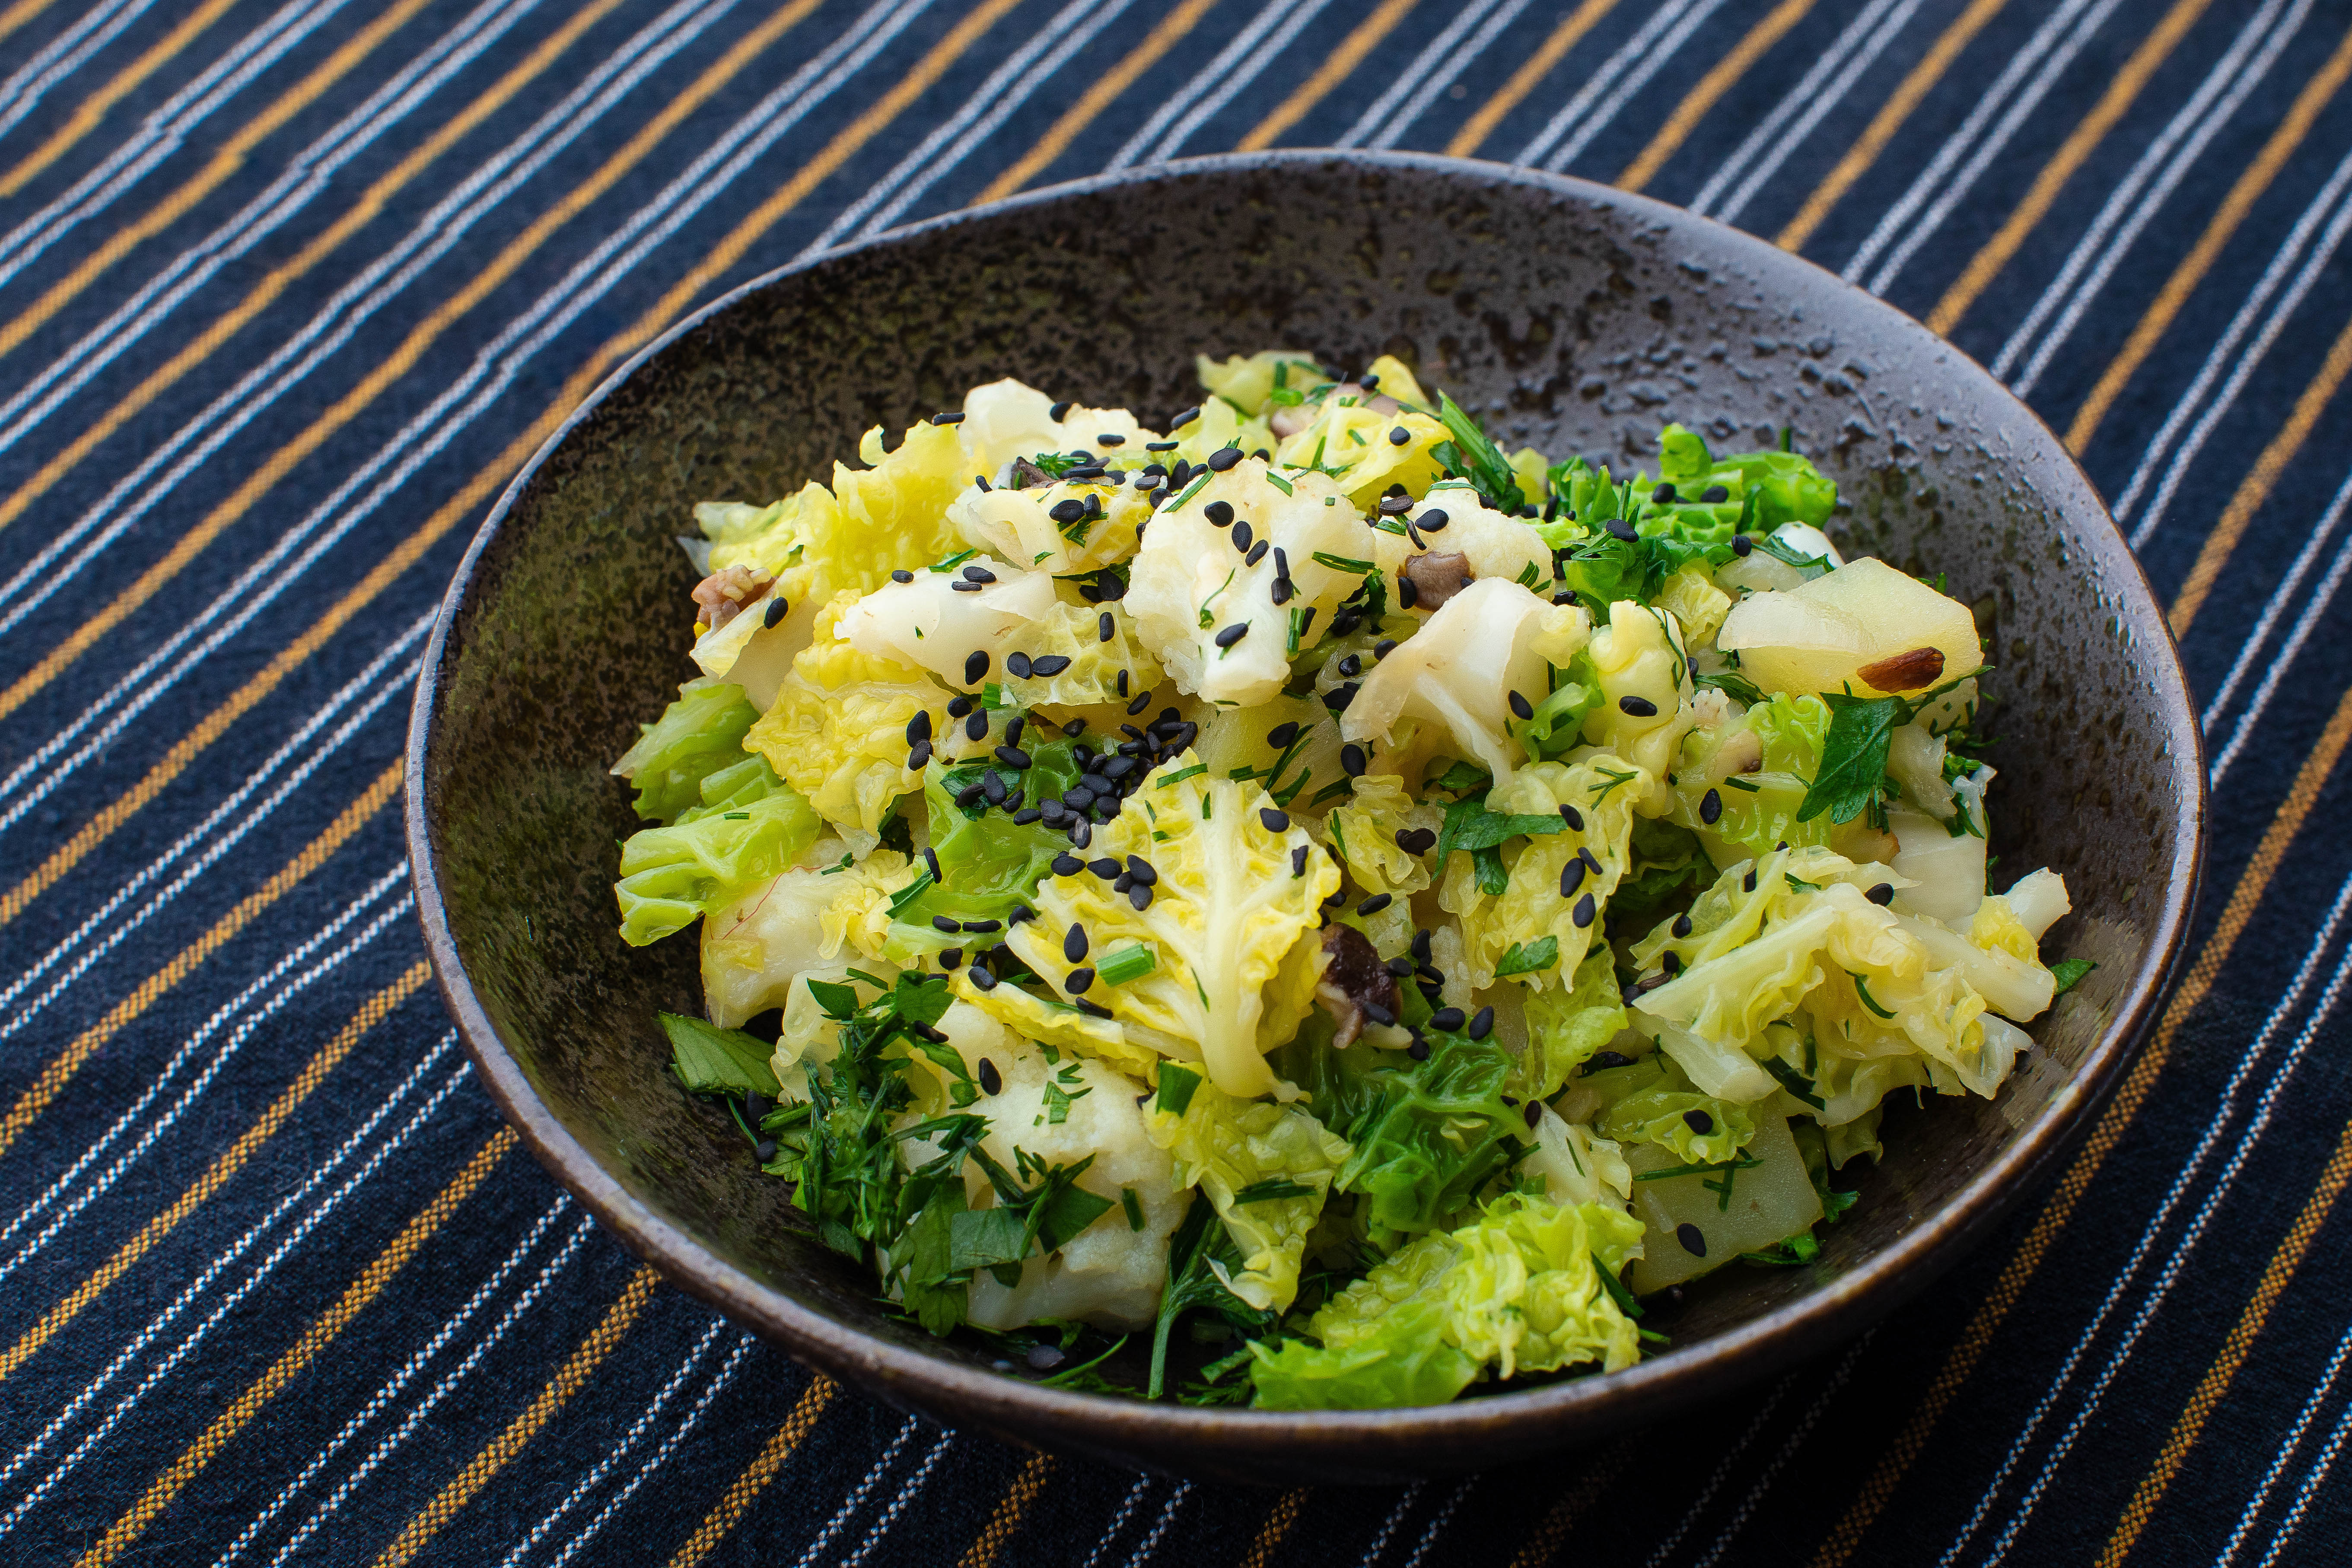 Savoy cabbage, cauliflower, potatoe and mushroom stir fry